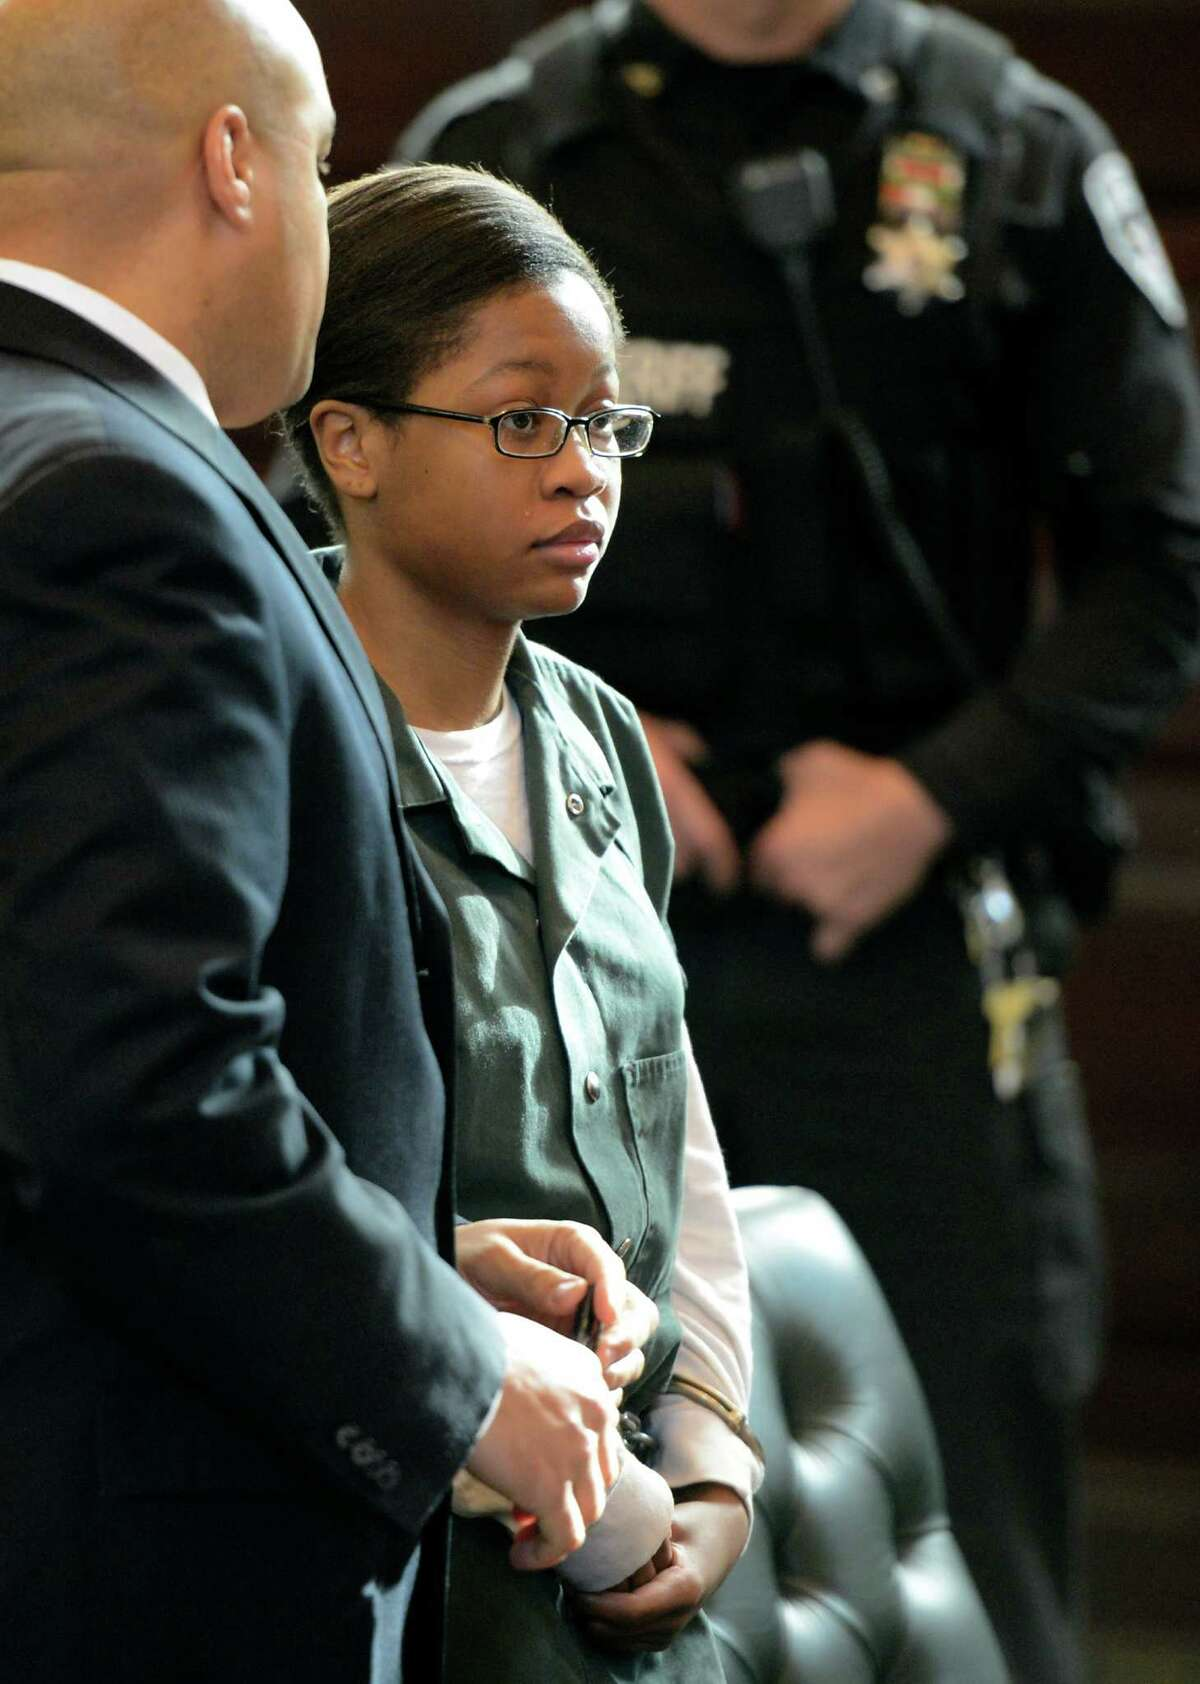 Trinity Copeland, represented by attorney Matthew Smalls, left, was arraigned on second-degree murder charges in front of Judge Andrew Ceresia at the Rensselaer County Courthouse in Troy, N.Y. Dec. 20, 2012. (Skip Dickstein/Times Union archive)